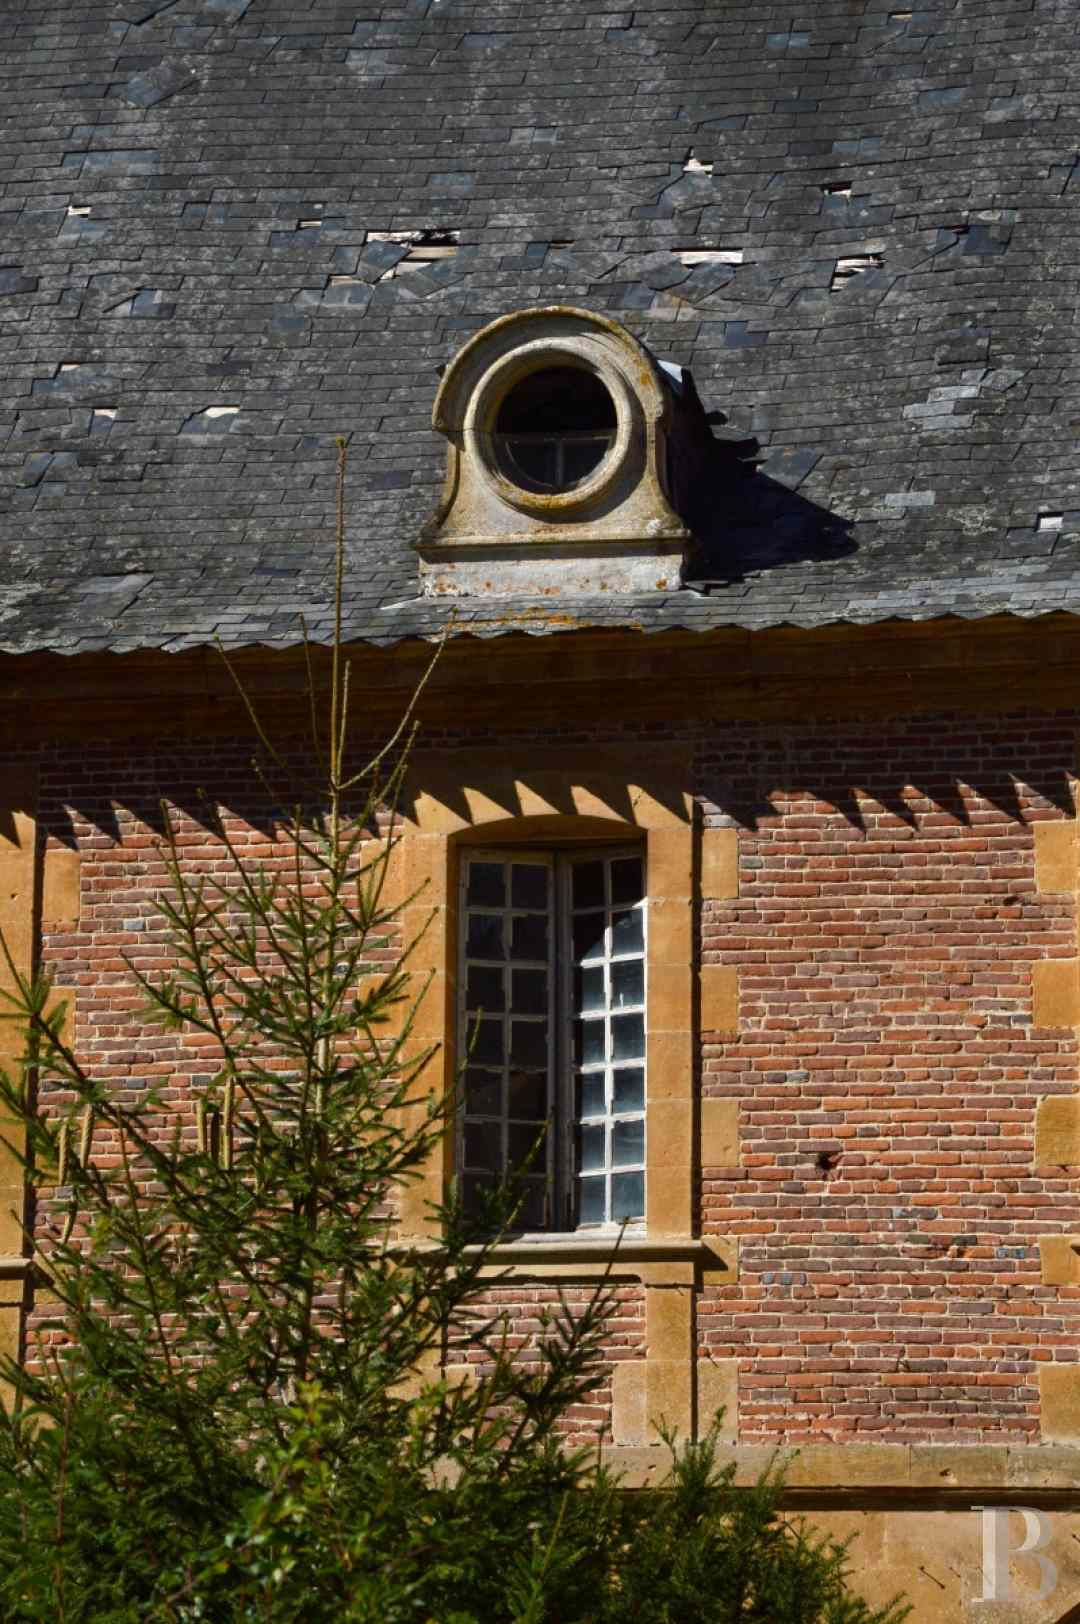 chateaux a vendre champagne ardennes chateau monument - 6 zoom